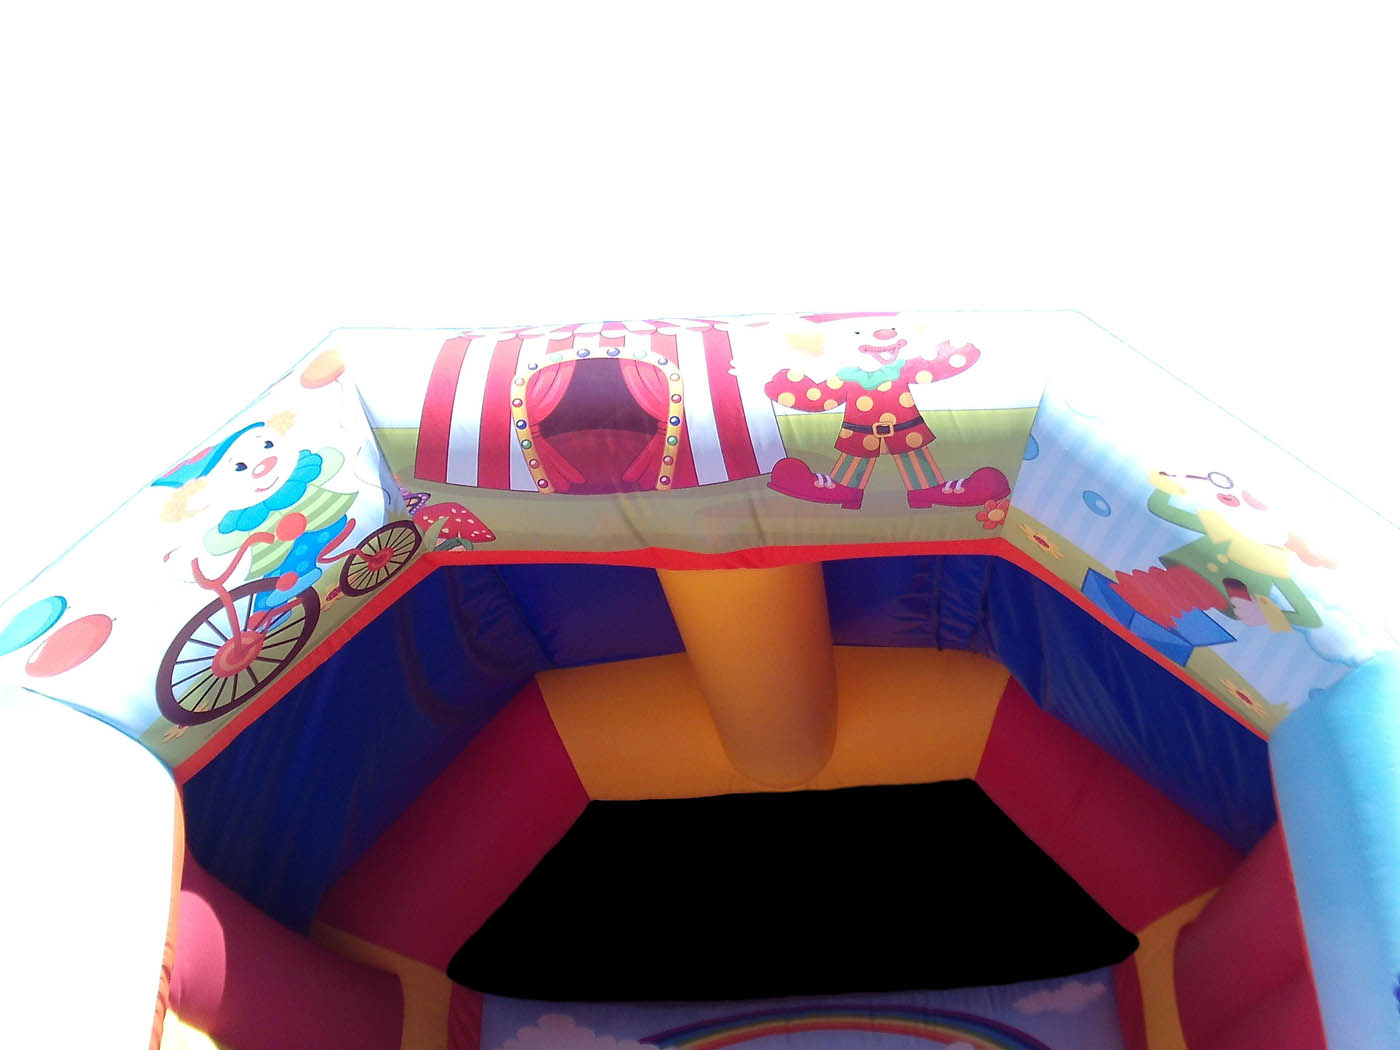 Circus themed artwork on bouncy castle